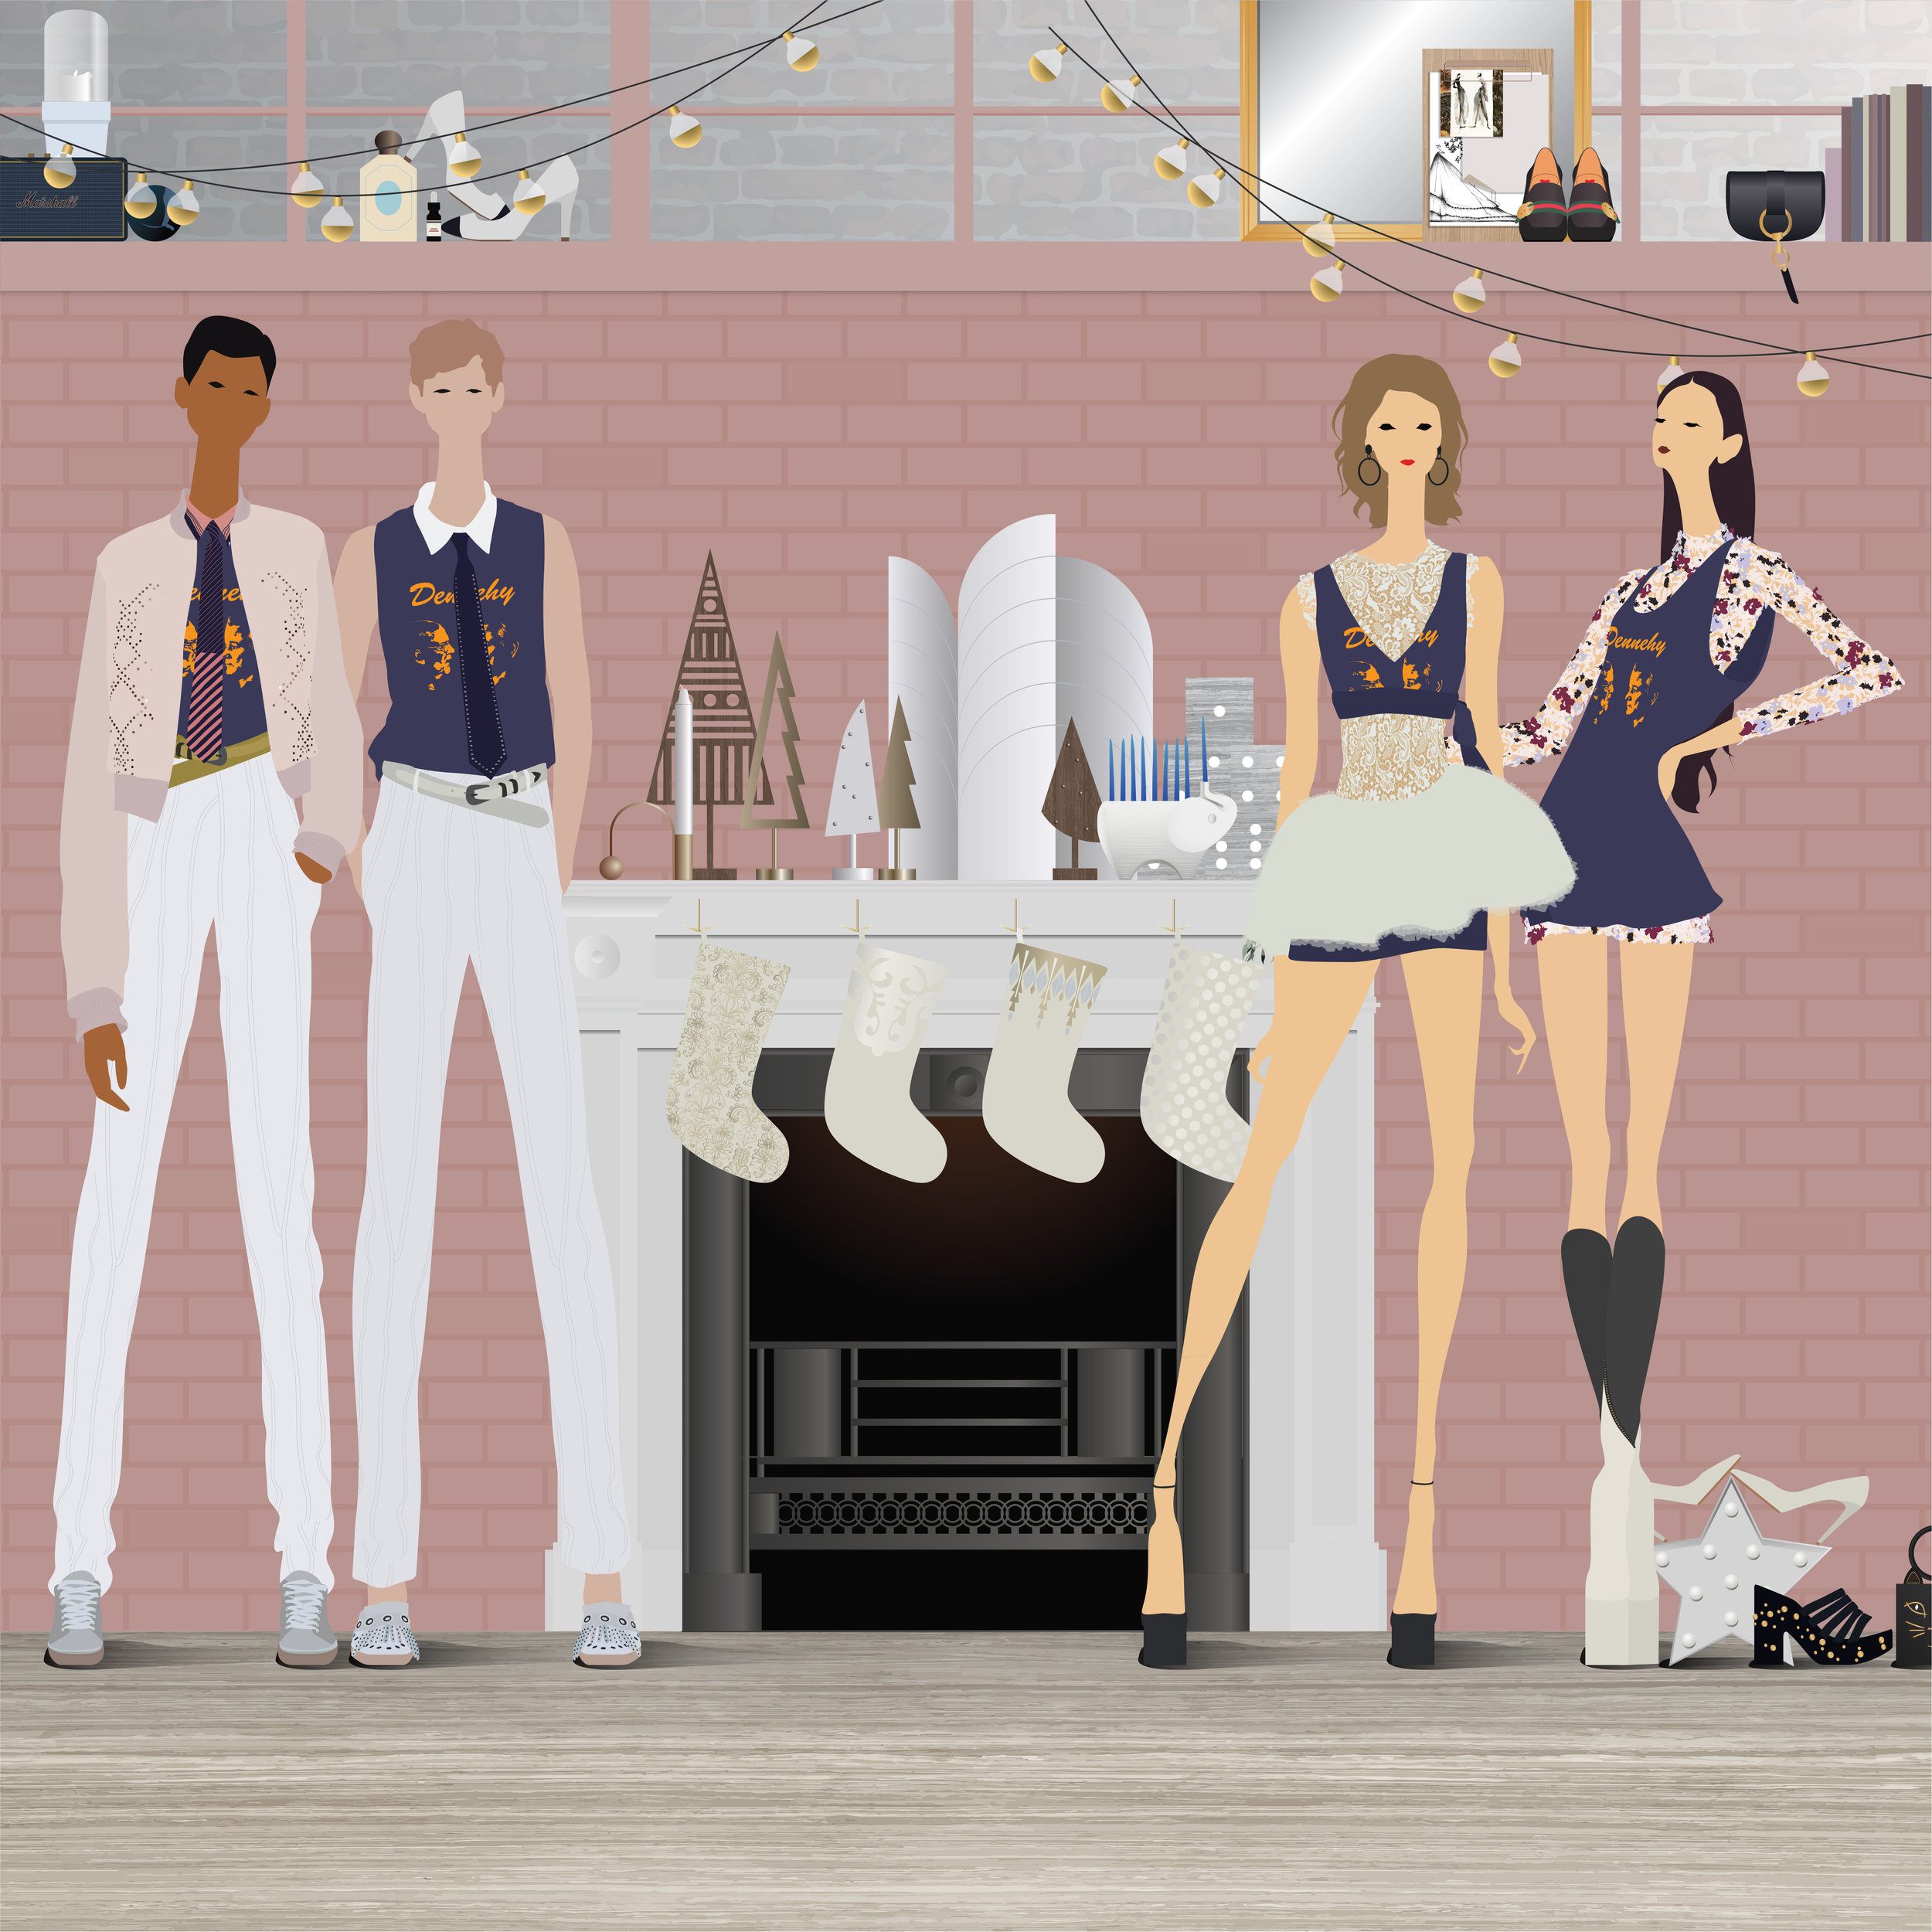 Left to right: Bottega Veneta Men's S18 outfit, vintage Chanel pumps, Bottega Veneta Mens S18 outfit, Giambattista Valli SS17 outfit, Gucci loafers, Giambattista Valli SS17 dress, Gucci boots